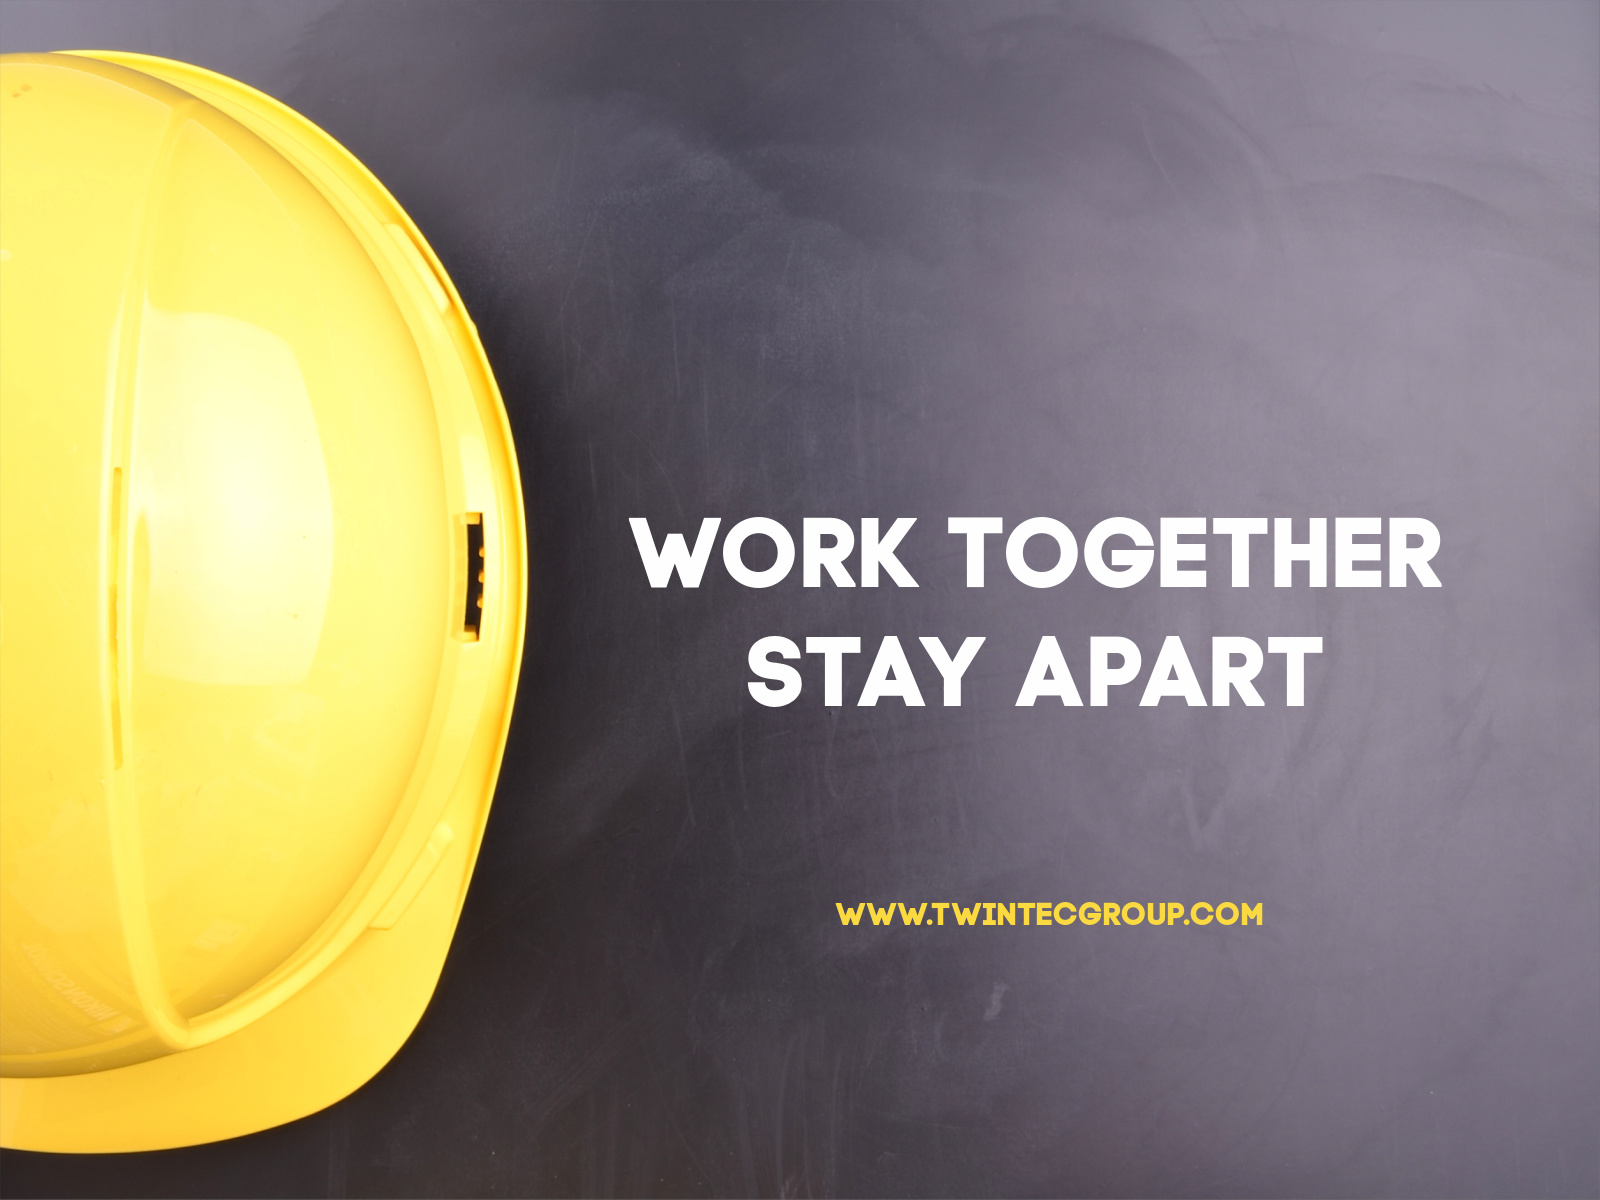 Work Together Stay Apart